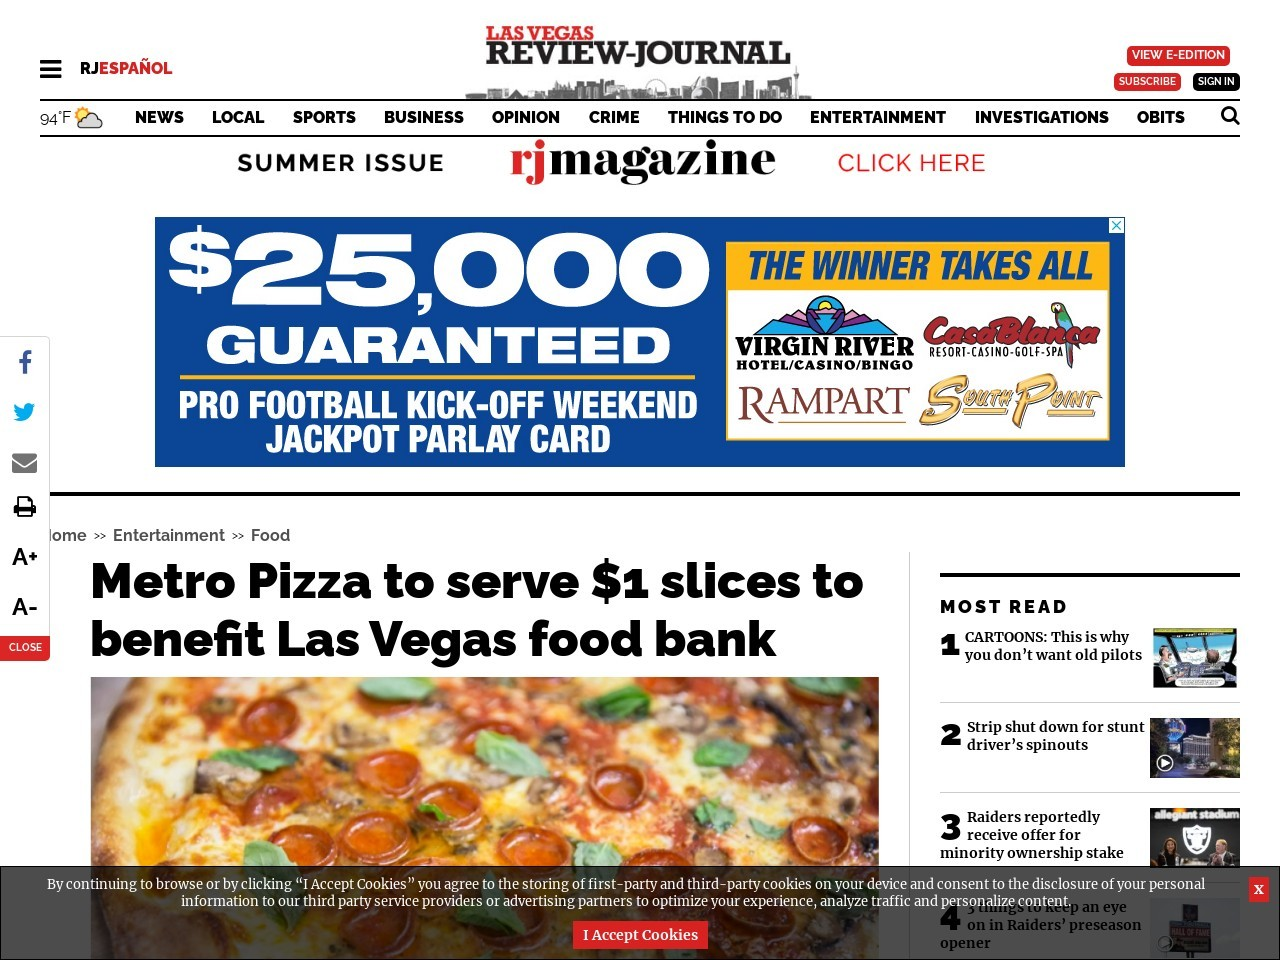 Metro Pizza to serve $1 slices to benefit Las Vegas food bank